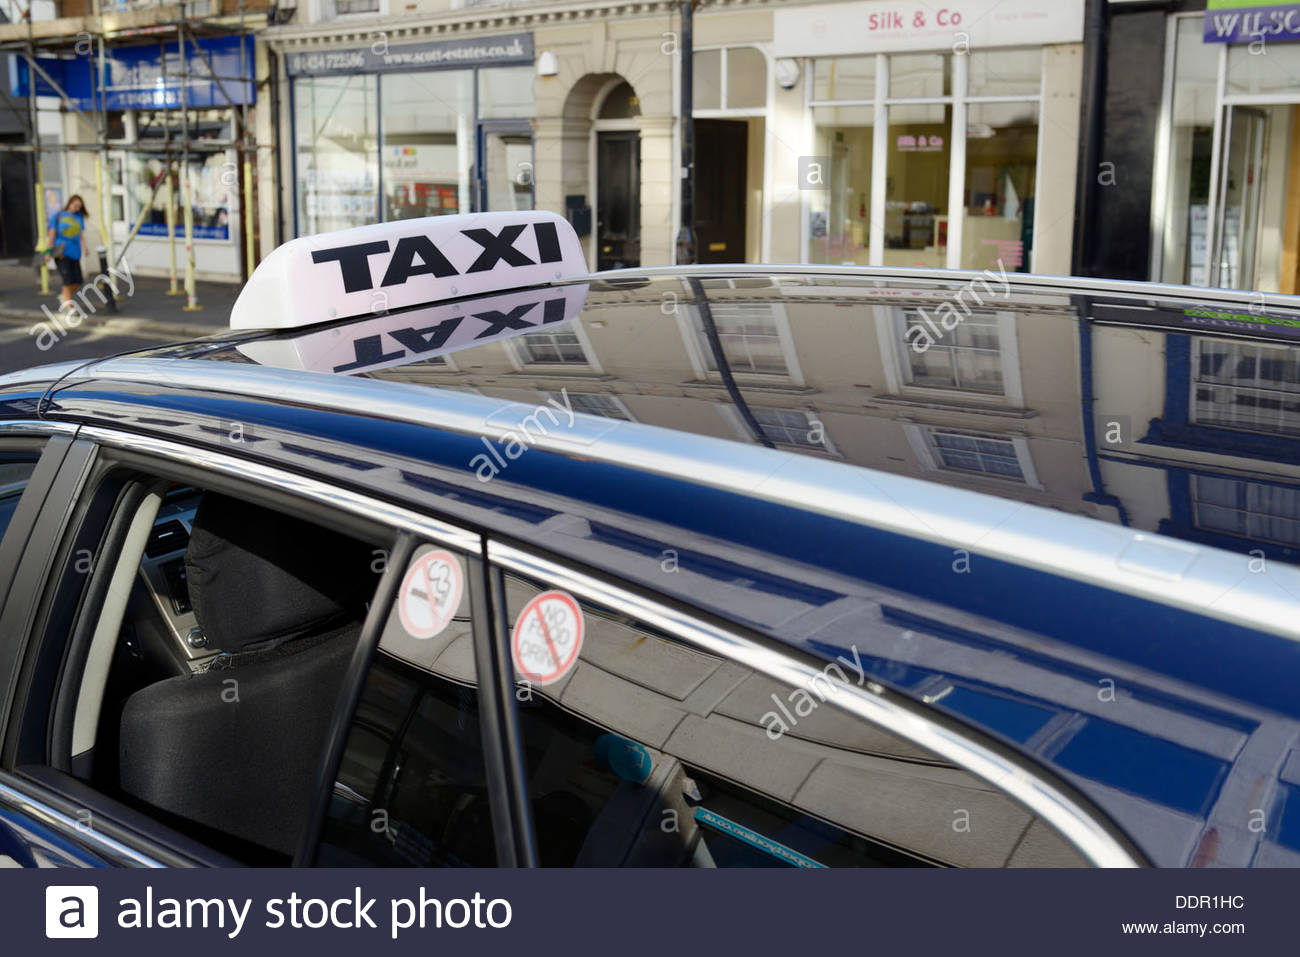 Taxi en la calle, Hastings, East Sussex, Inglaterra Imagen De Stock